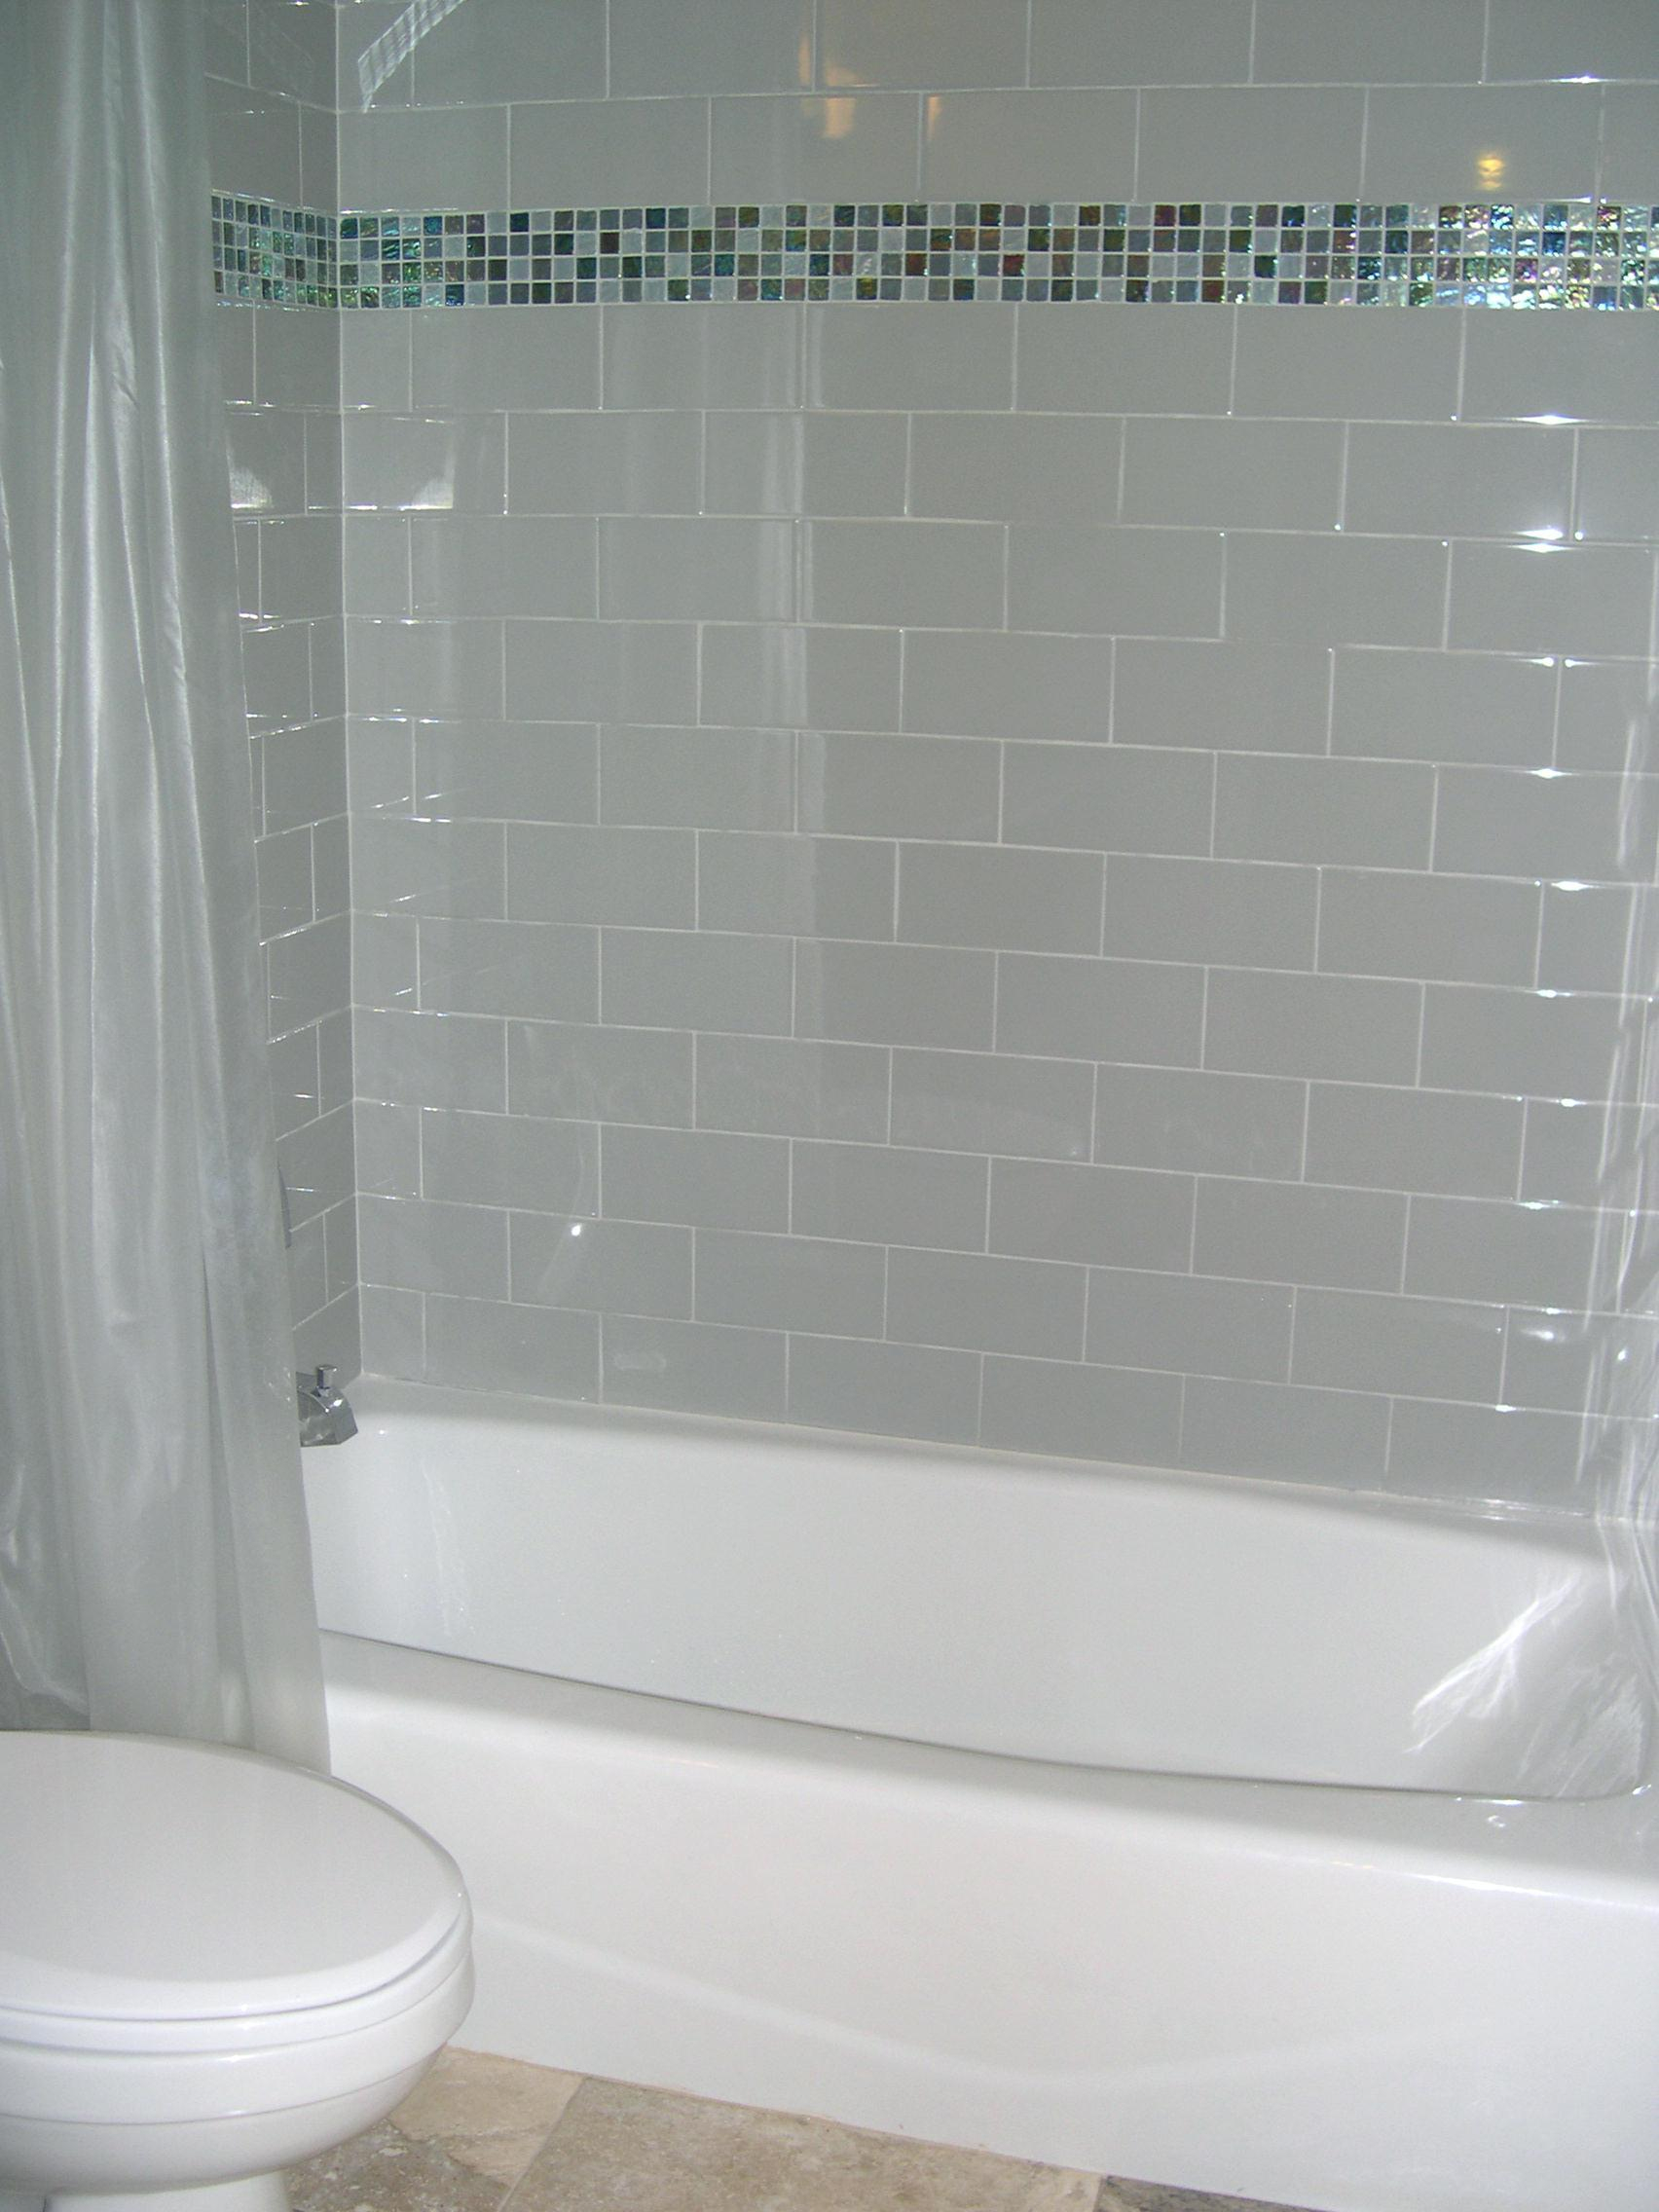 Glamorous Comely Bathroom Tub Shower Tile Ideas Bathroom Tub Tile Ideas S B for Review Bathroom Tub Tile Ideas